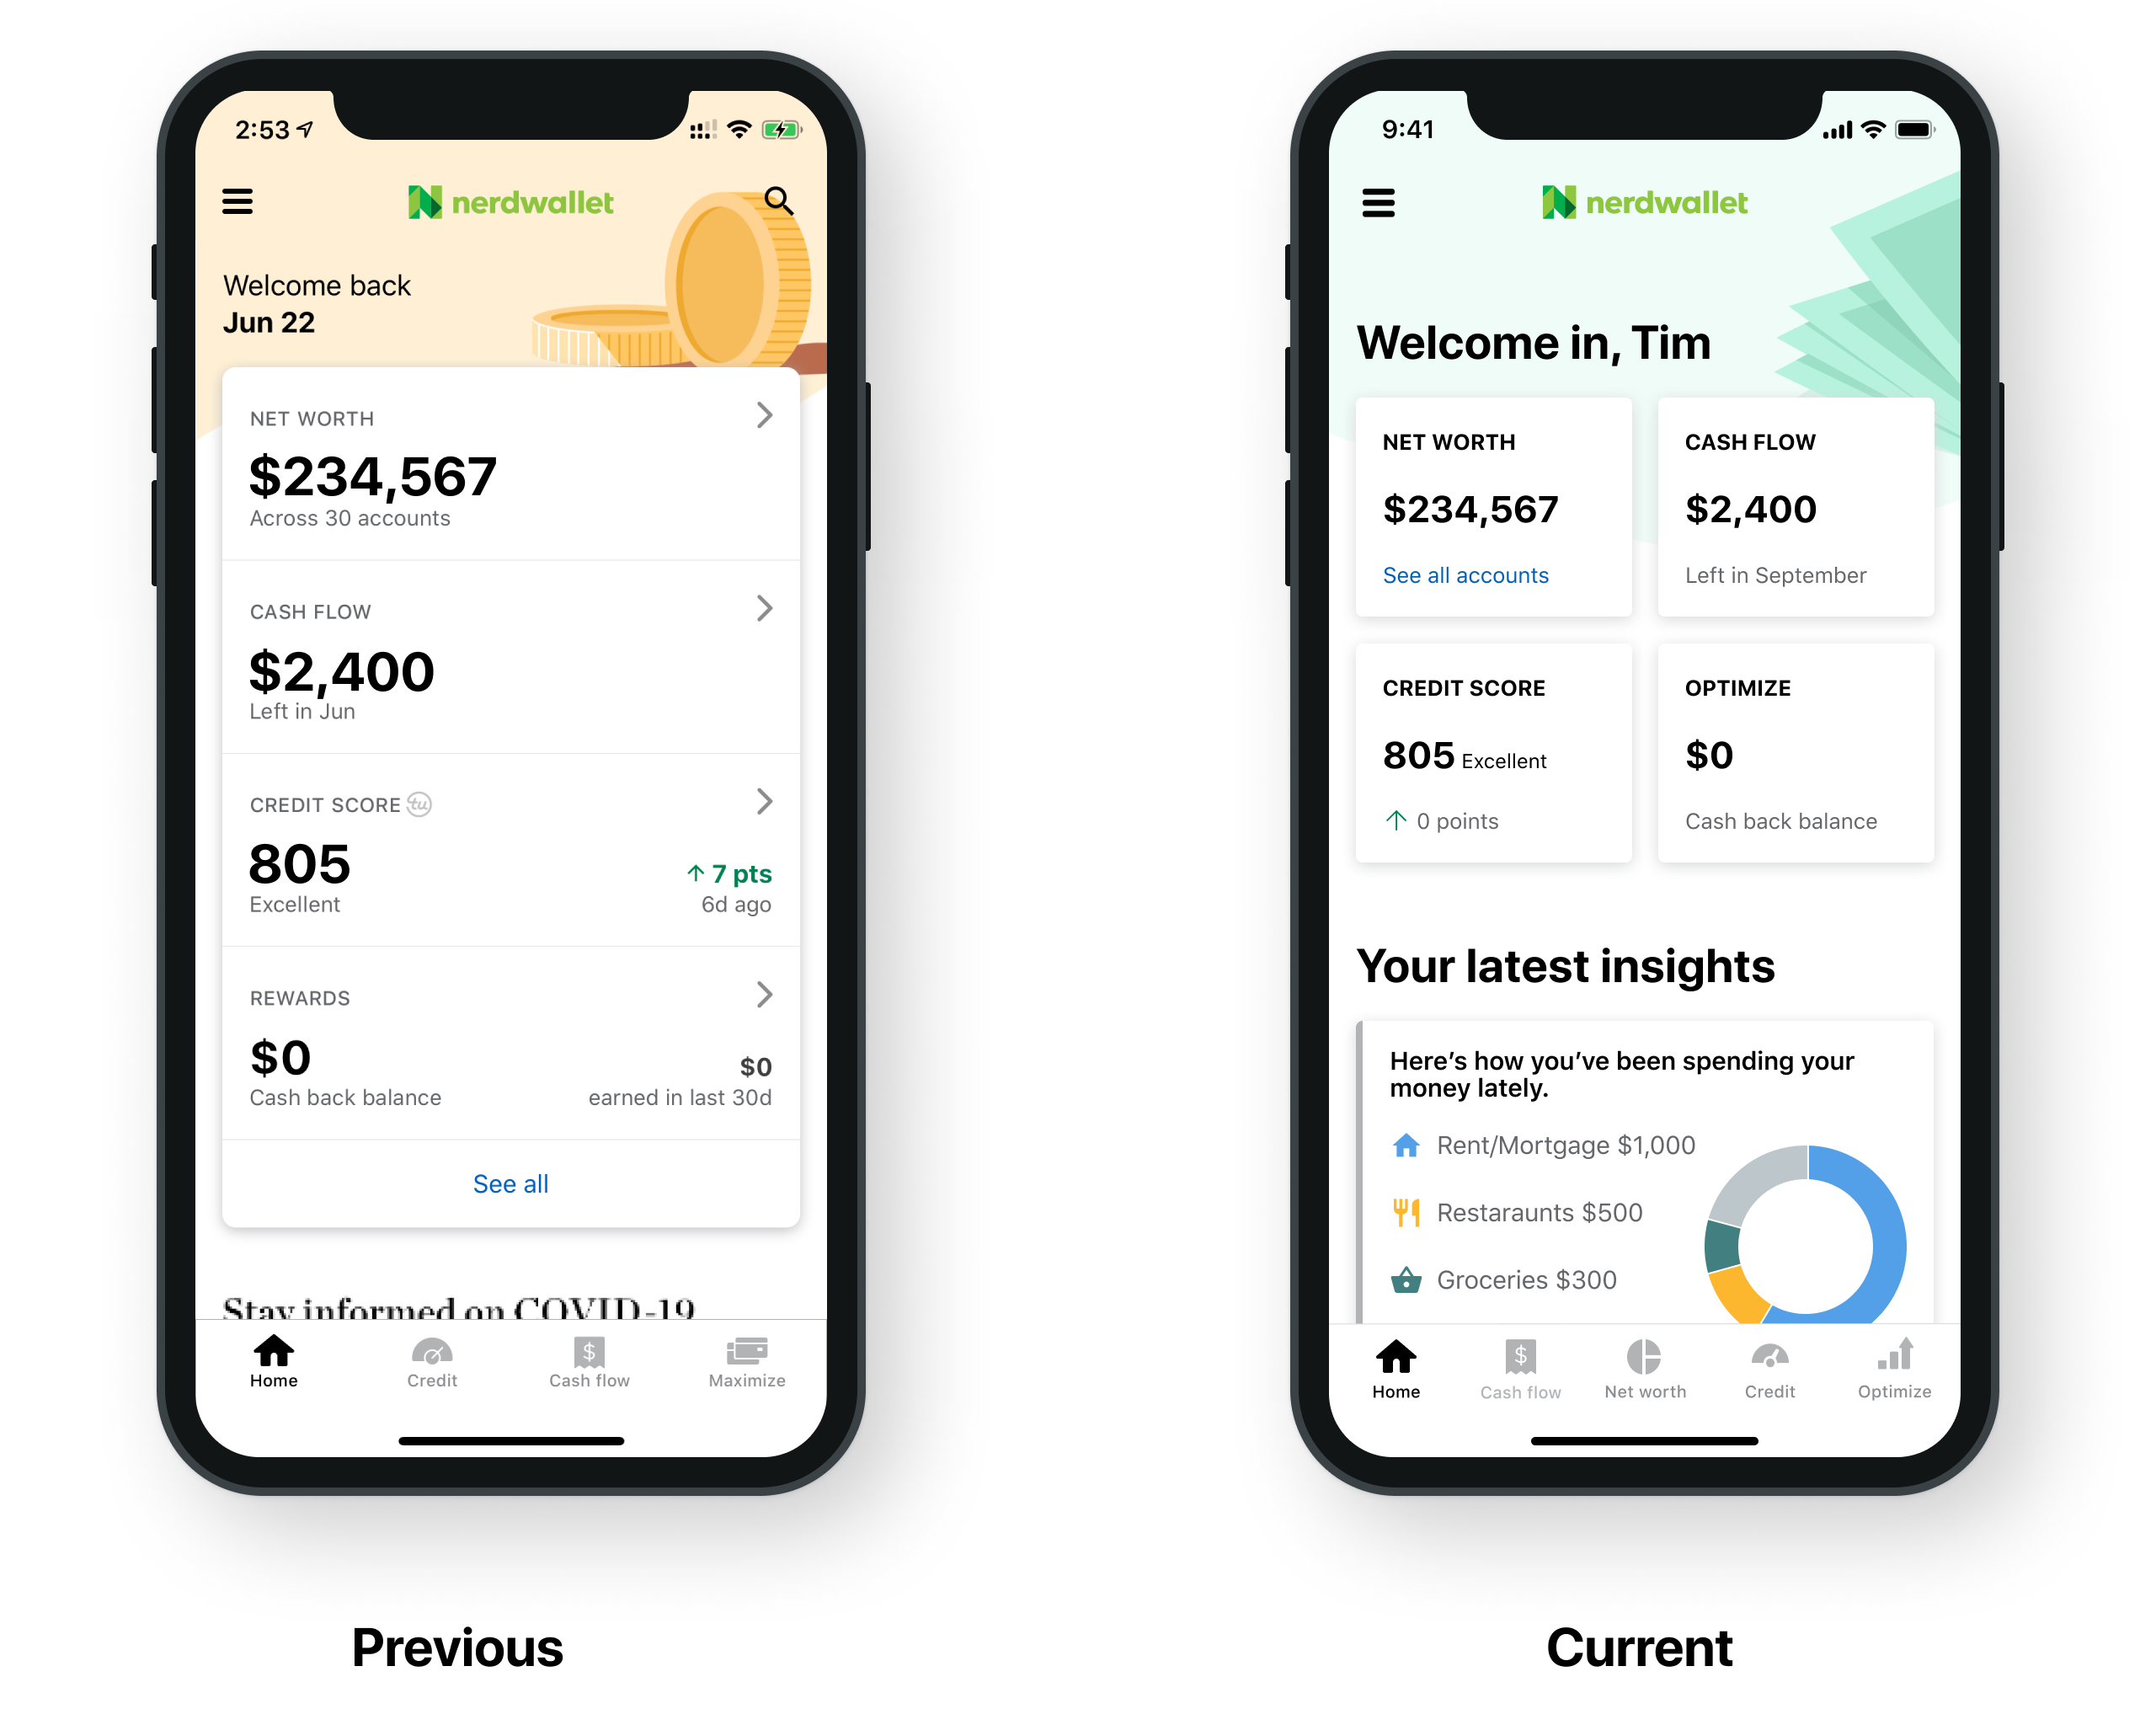 """Two screenshots, showing the app's home screen before and after the redesign. Before, information is stacked vertically and the only things """"above the fold"""" are the user's top financial numbers. After, the information is displayed more compactly so there's additional space for a section called """"Your latest insights."""""""